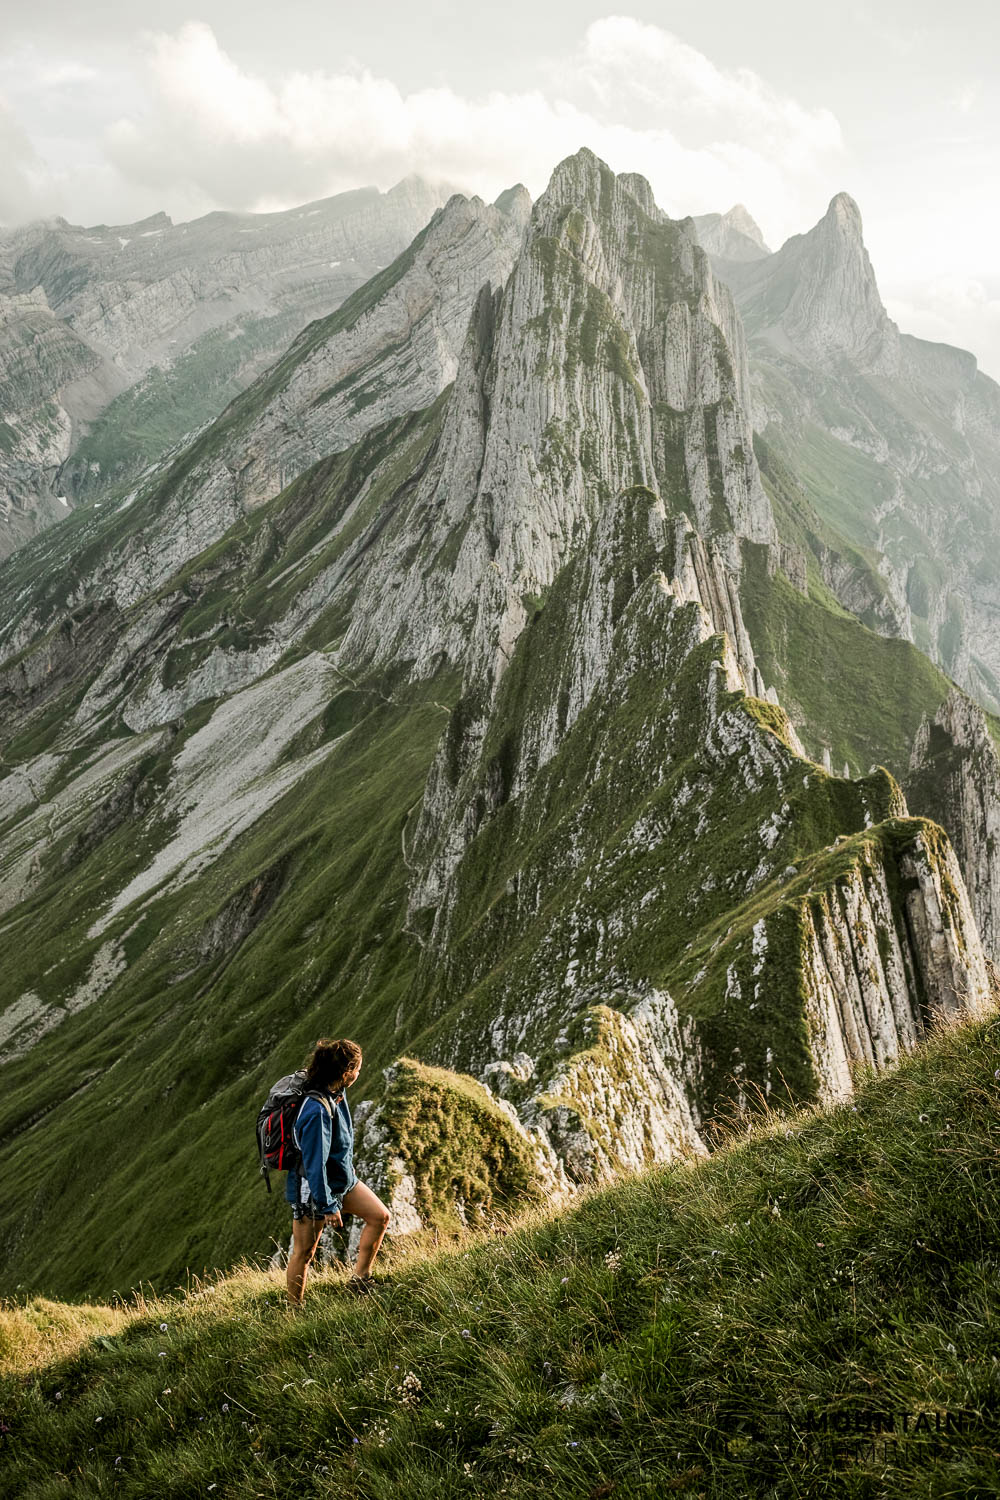 mountain photography, mountain photography tips, bergfotografie tipps, bergfotografie, mountain photography tip contrast, contrast ion mountain photography, contrast in landscape photography, mountain photography gear, gear tipps for photographers, scence of scale